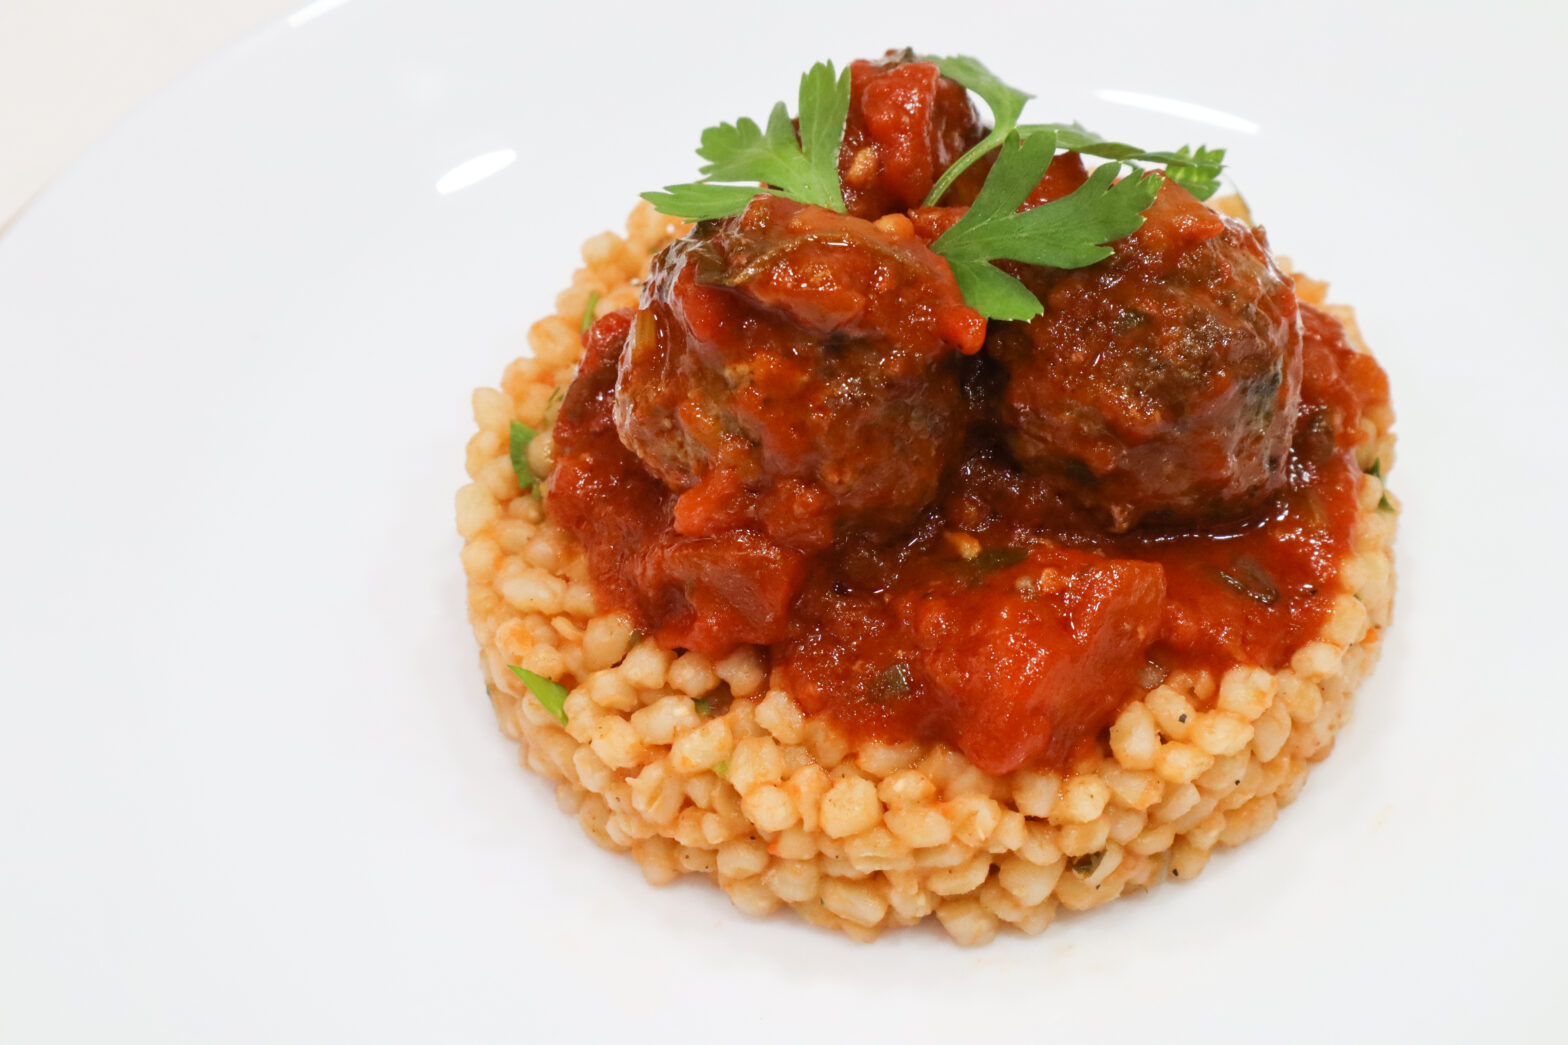 Harees with Meatballs